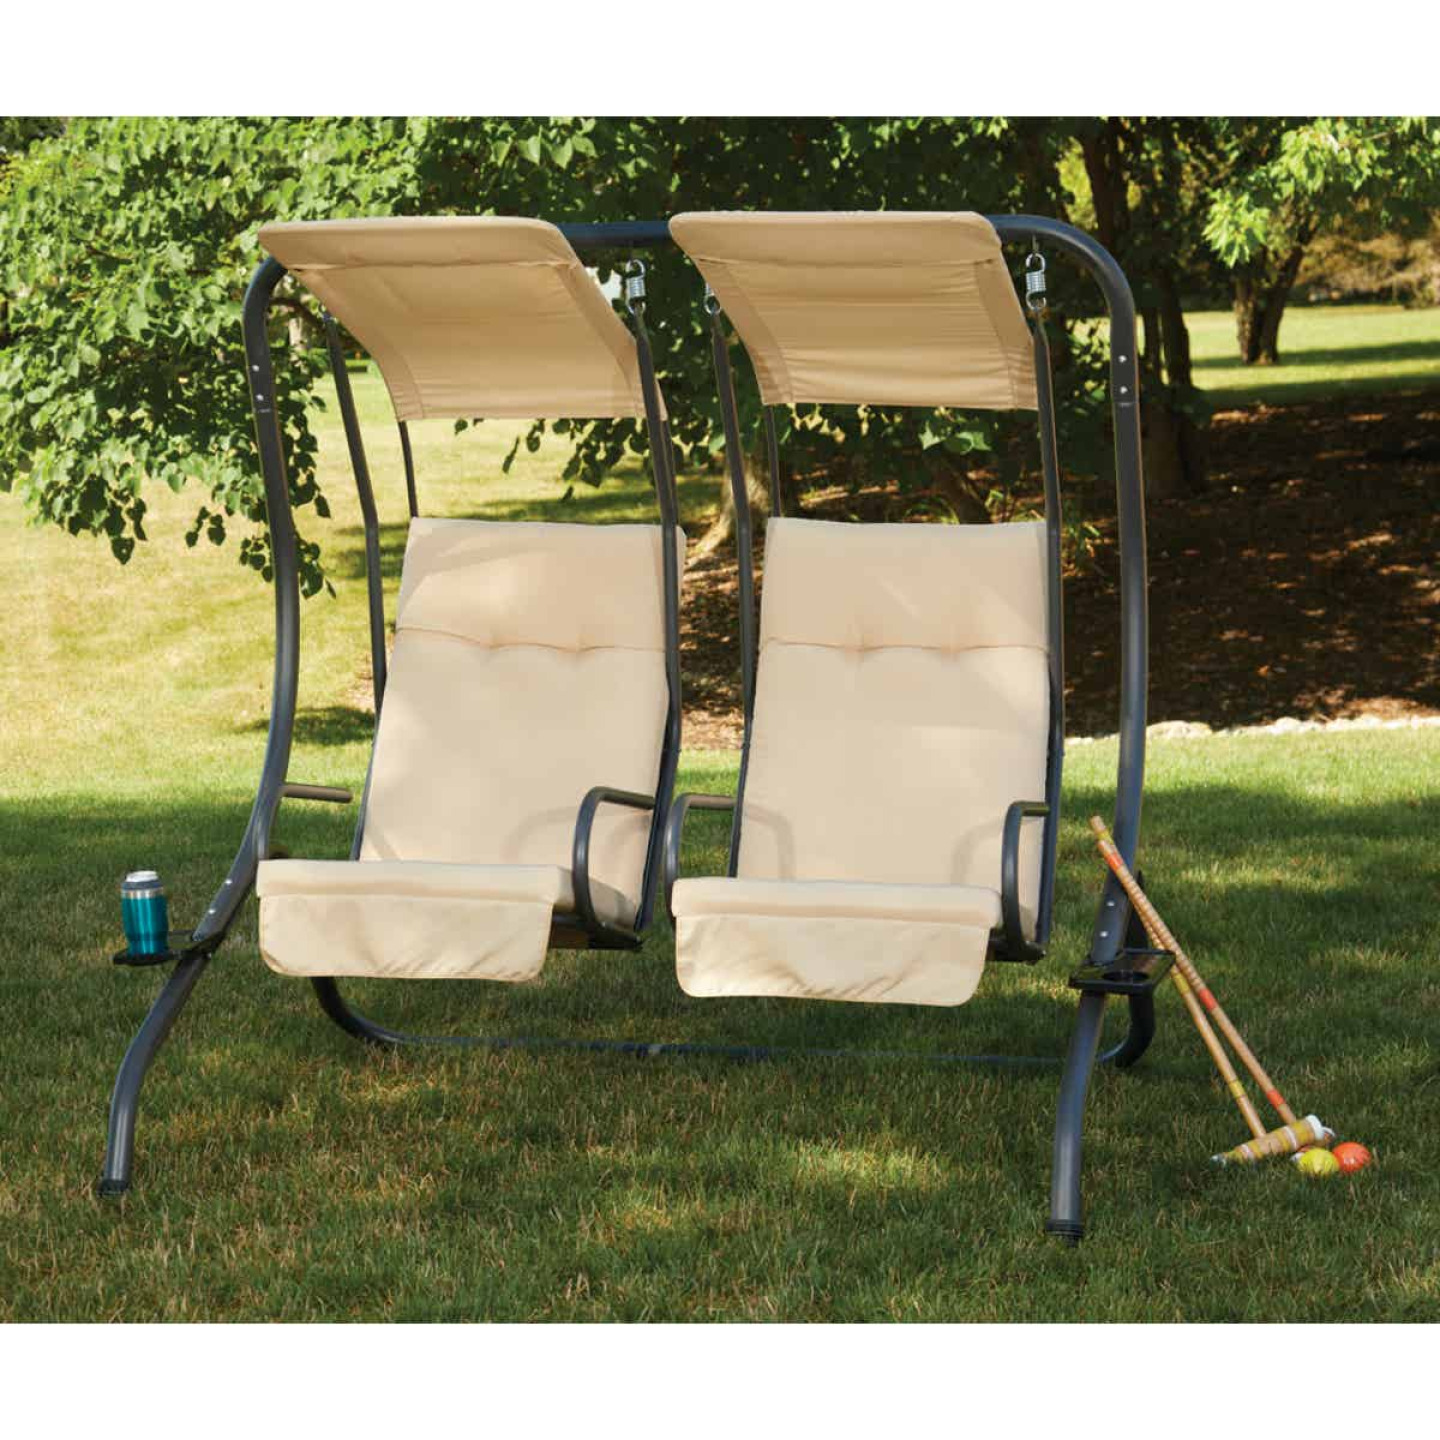 Outdoor Expressions 2-Person 67 In. W. x 67 In. H. x 53.5 In. D. Tan Patio Swing Image 7